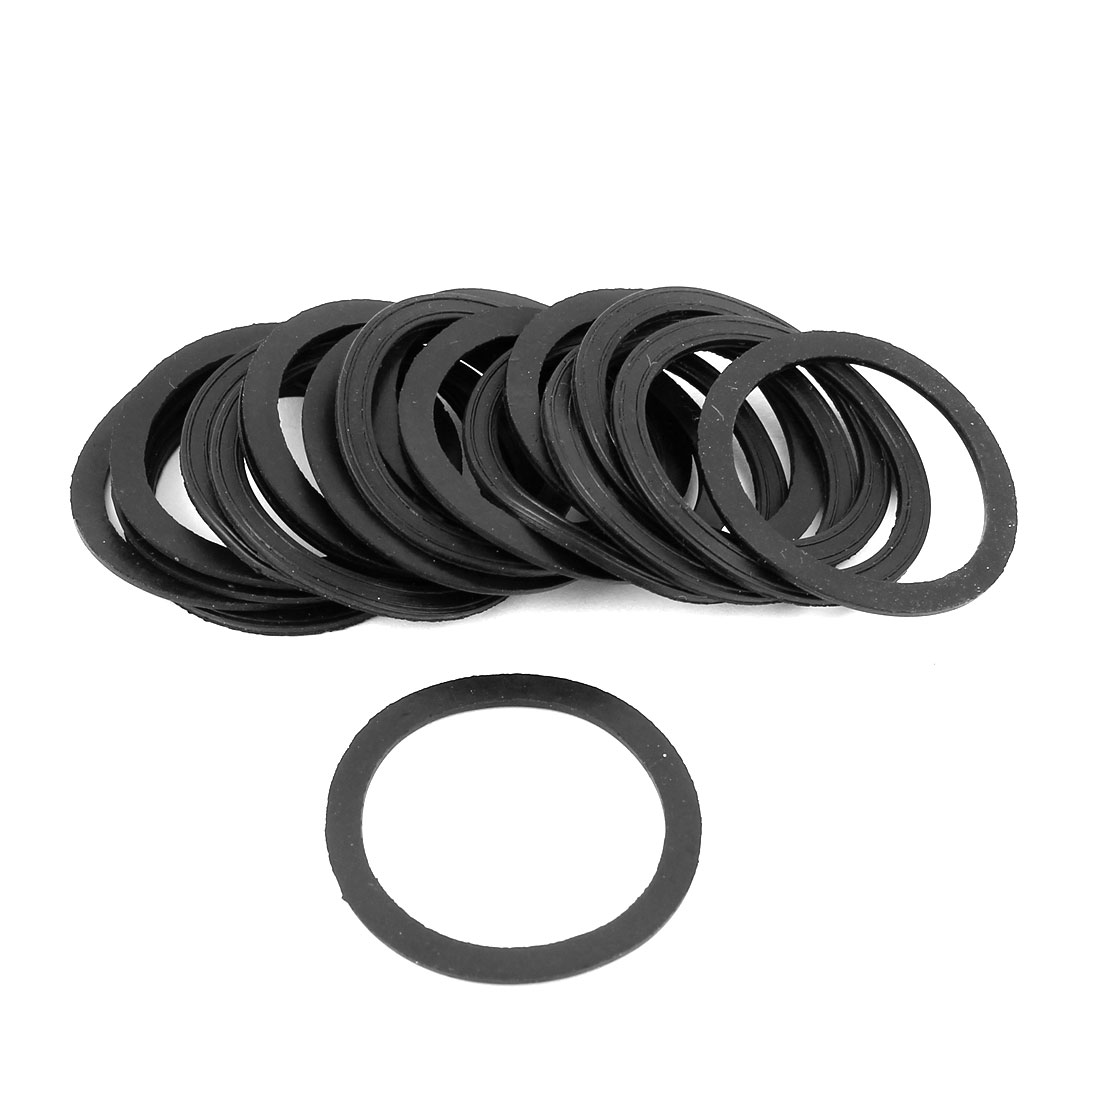 20PCS 44x35x1.8mm Flat Gaskets 0 Rings Seal Rubber Washers Black for PG29 Cable Gland